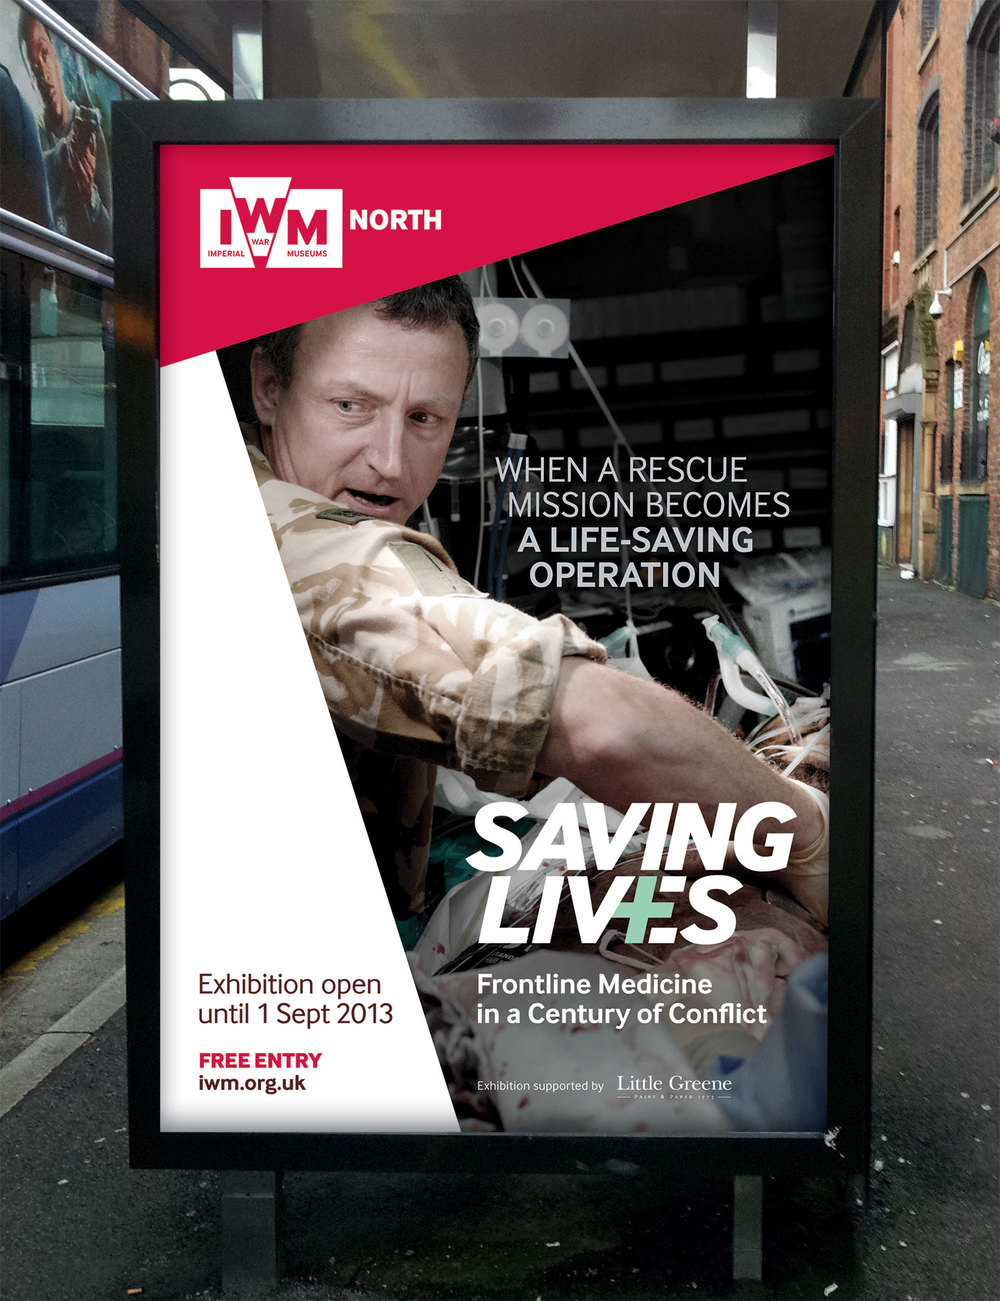 iwm_saving_lives_poster_bus.jpg